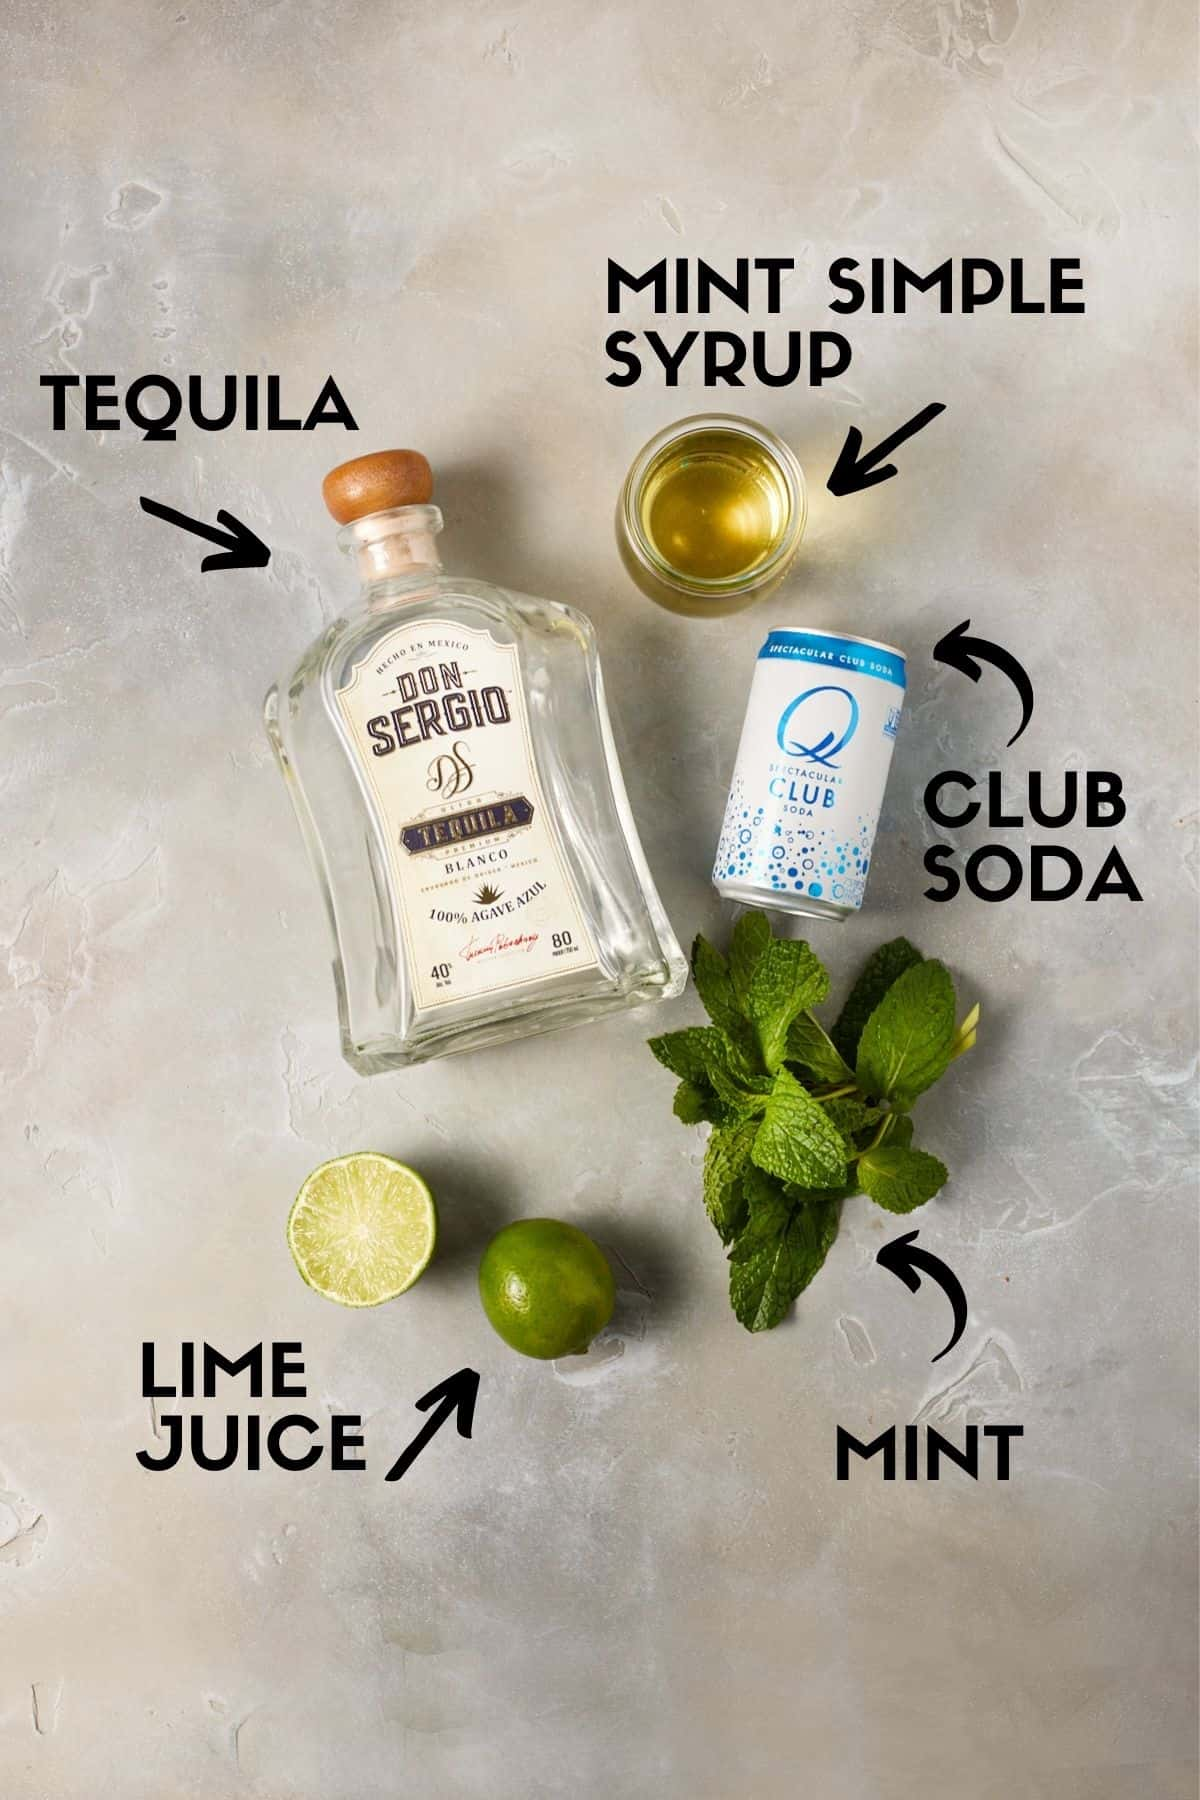 Ingredients for cocktail including tequila, club soda, lime juice and mint.